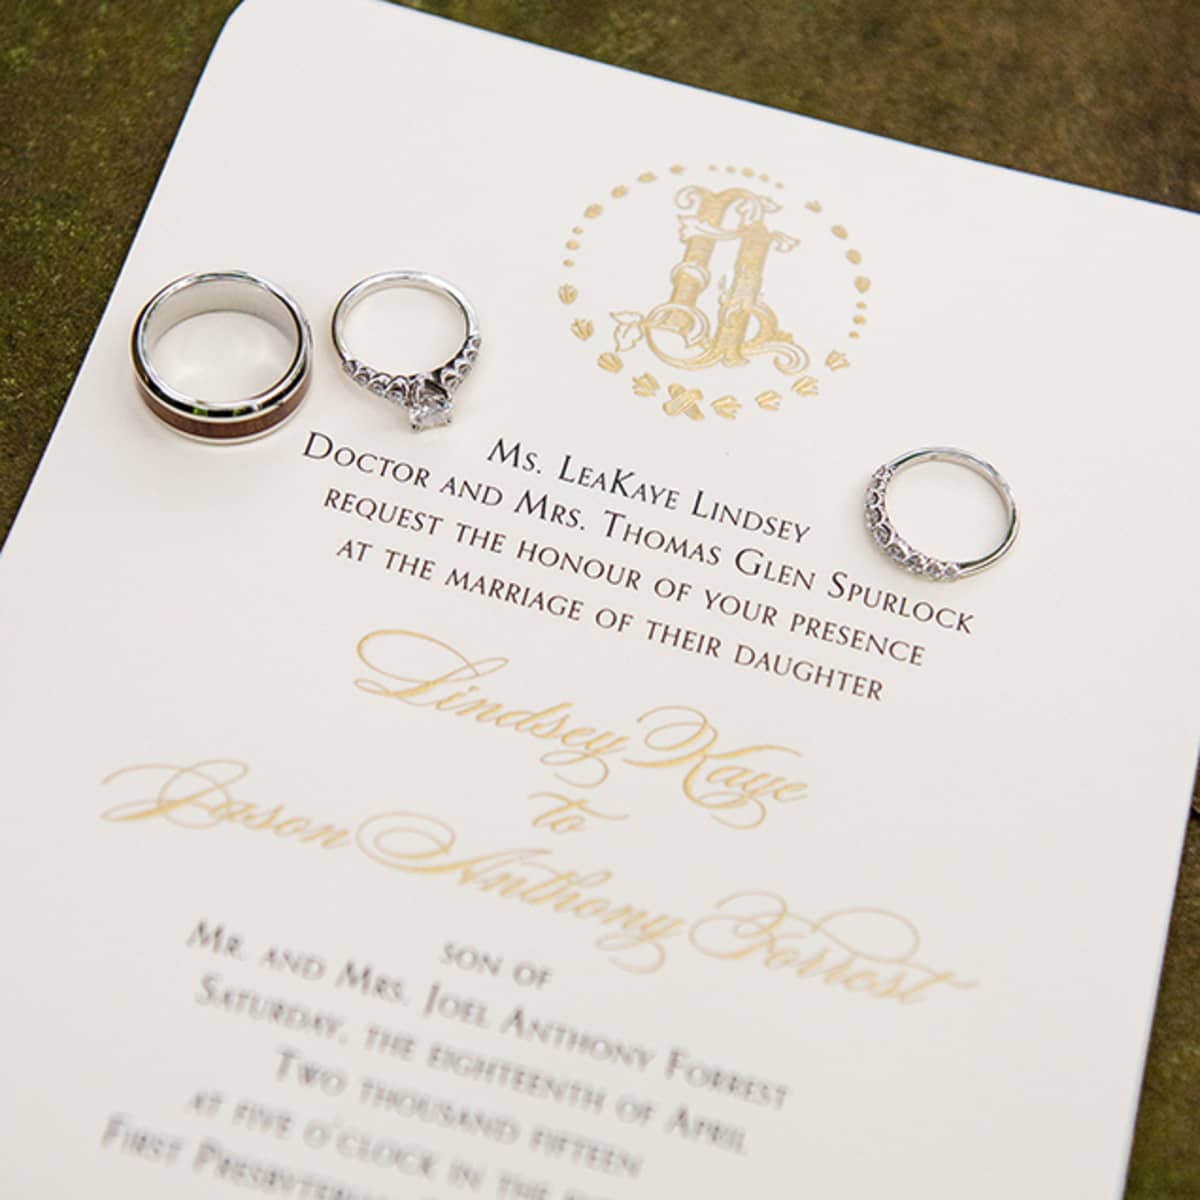 Invitations Feature An Engraved Duogram Custom Created For The Couple.